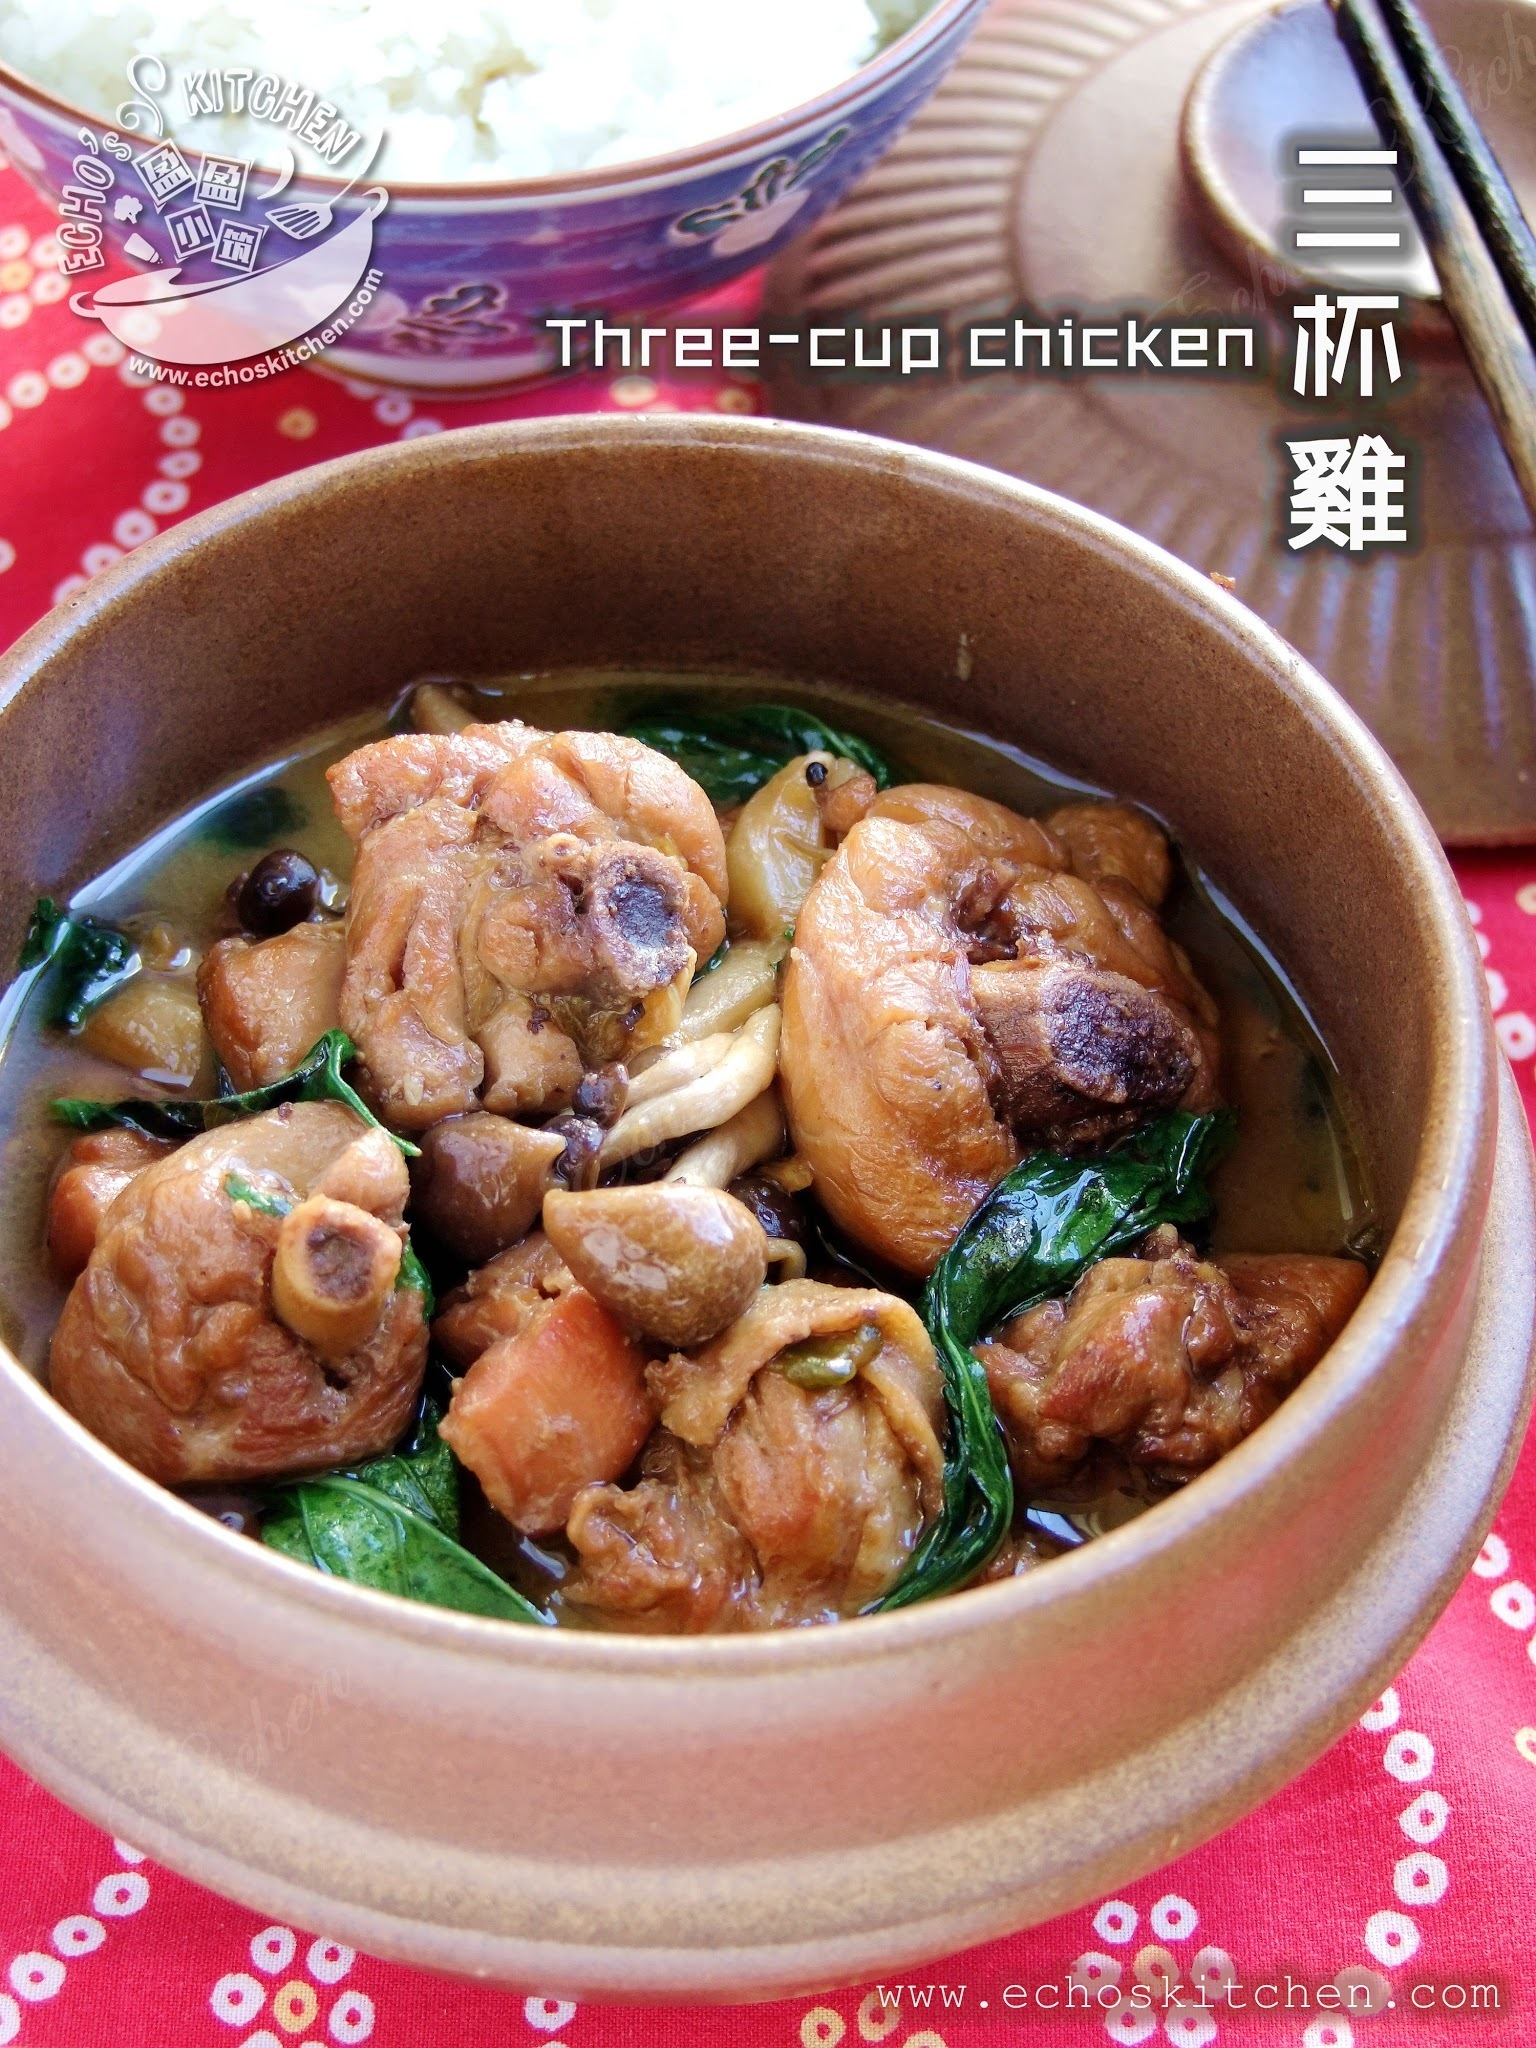 Three-cup chicken (三杯鸡)